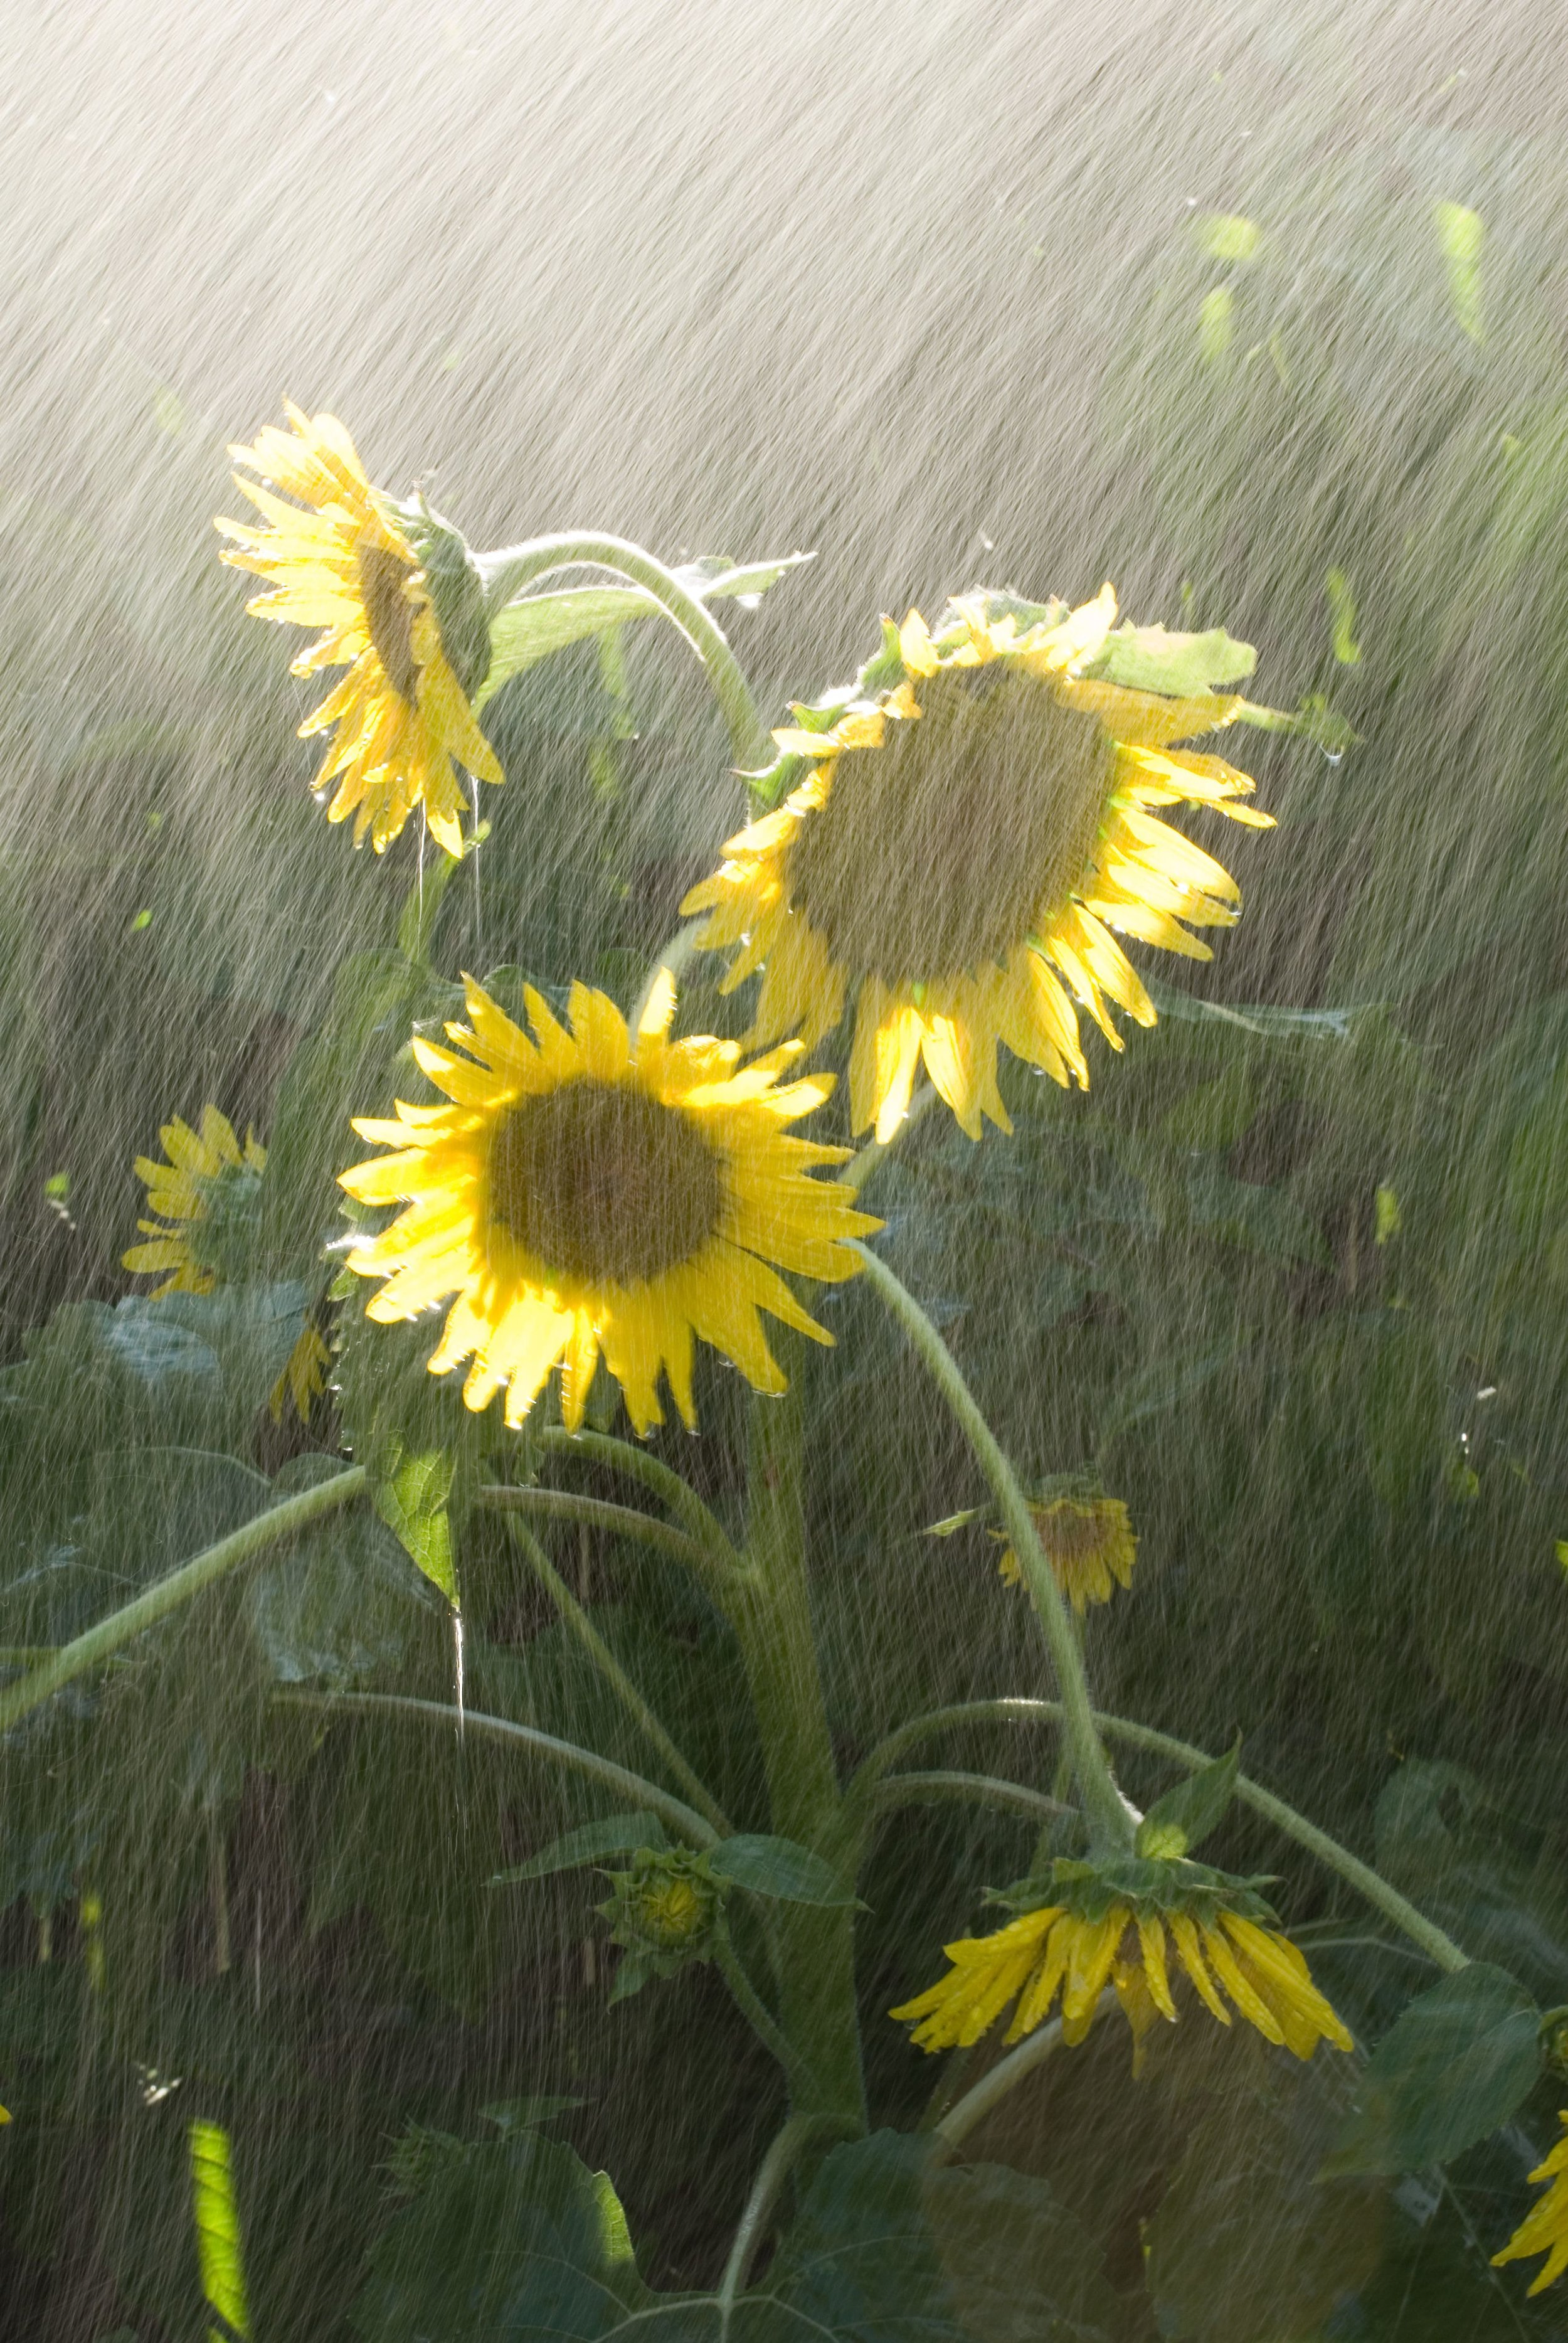 sunflowers_rain_and_sun.jpg